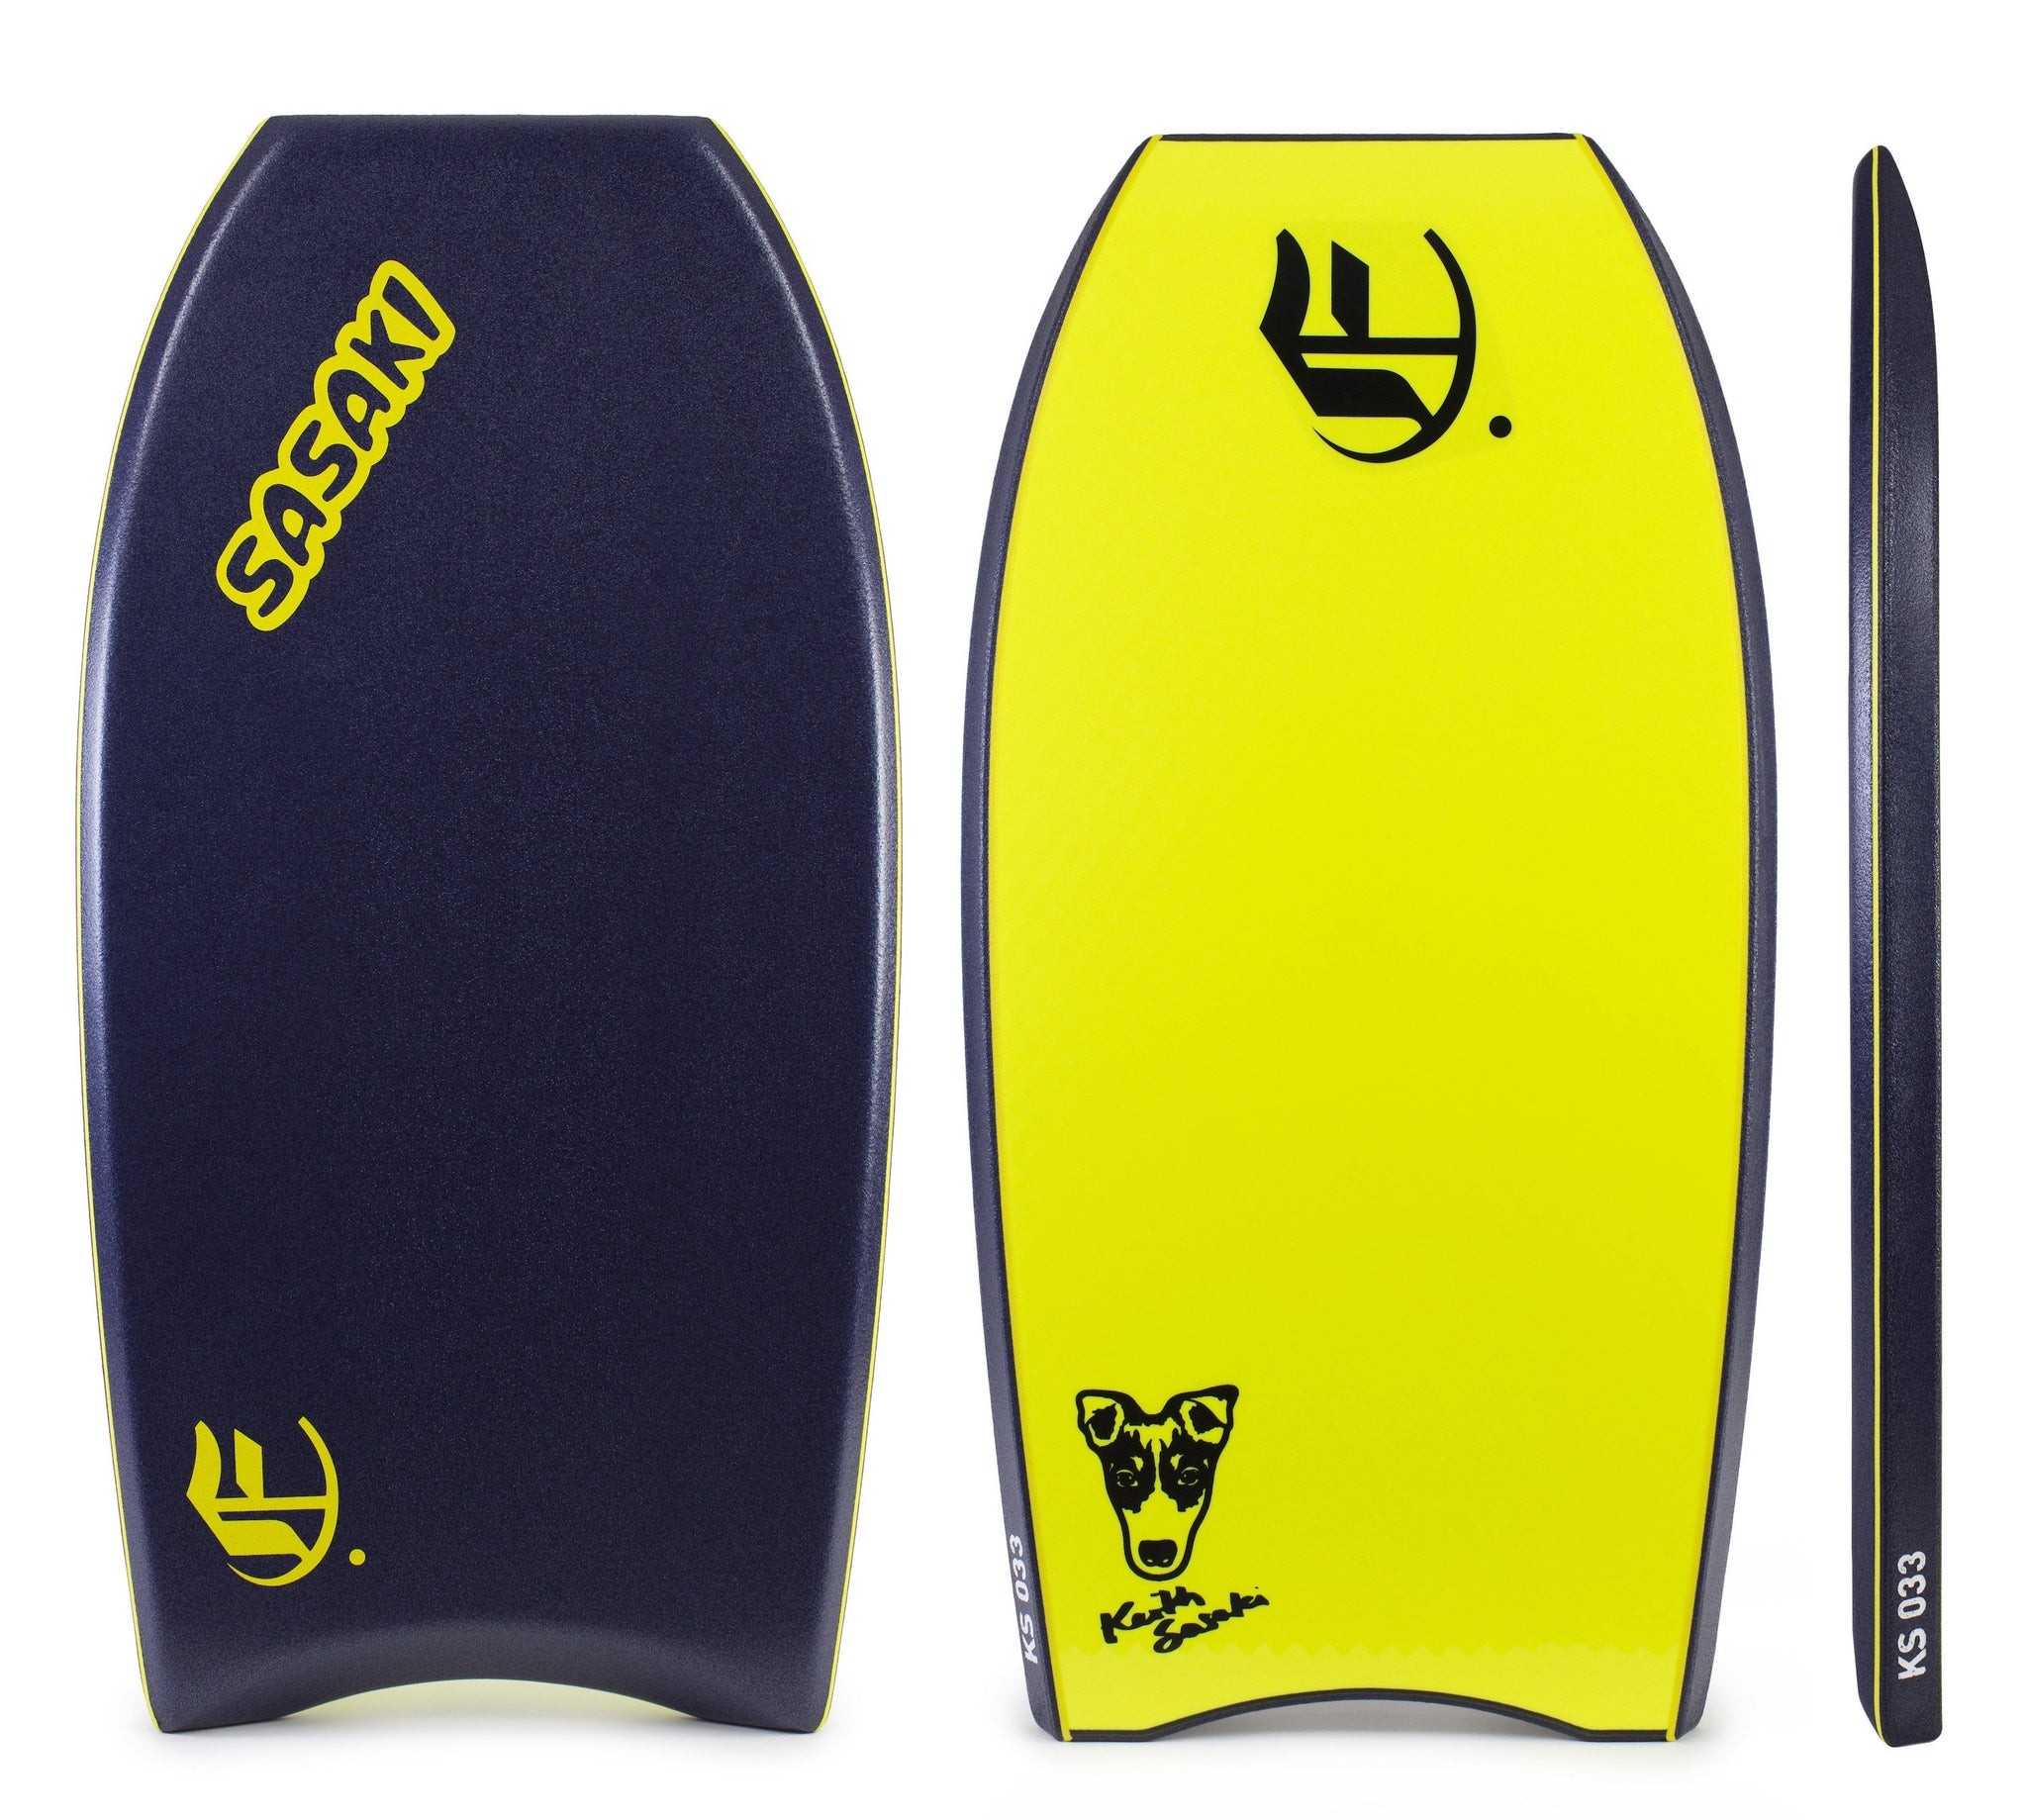 Empire Keith Sasaki Limited Edition Bodyboard - Bodyboards - 662 Bodyboard Shop